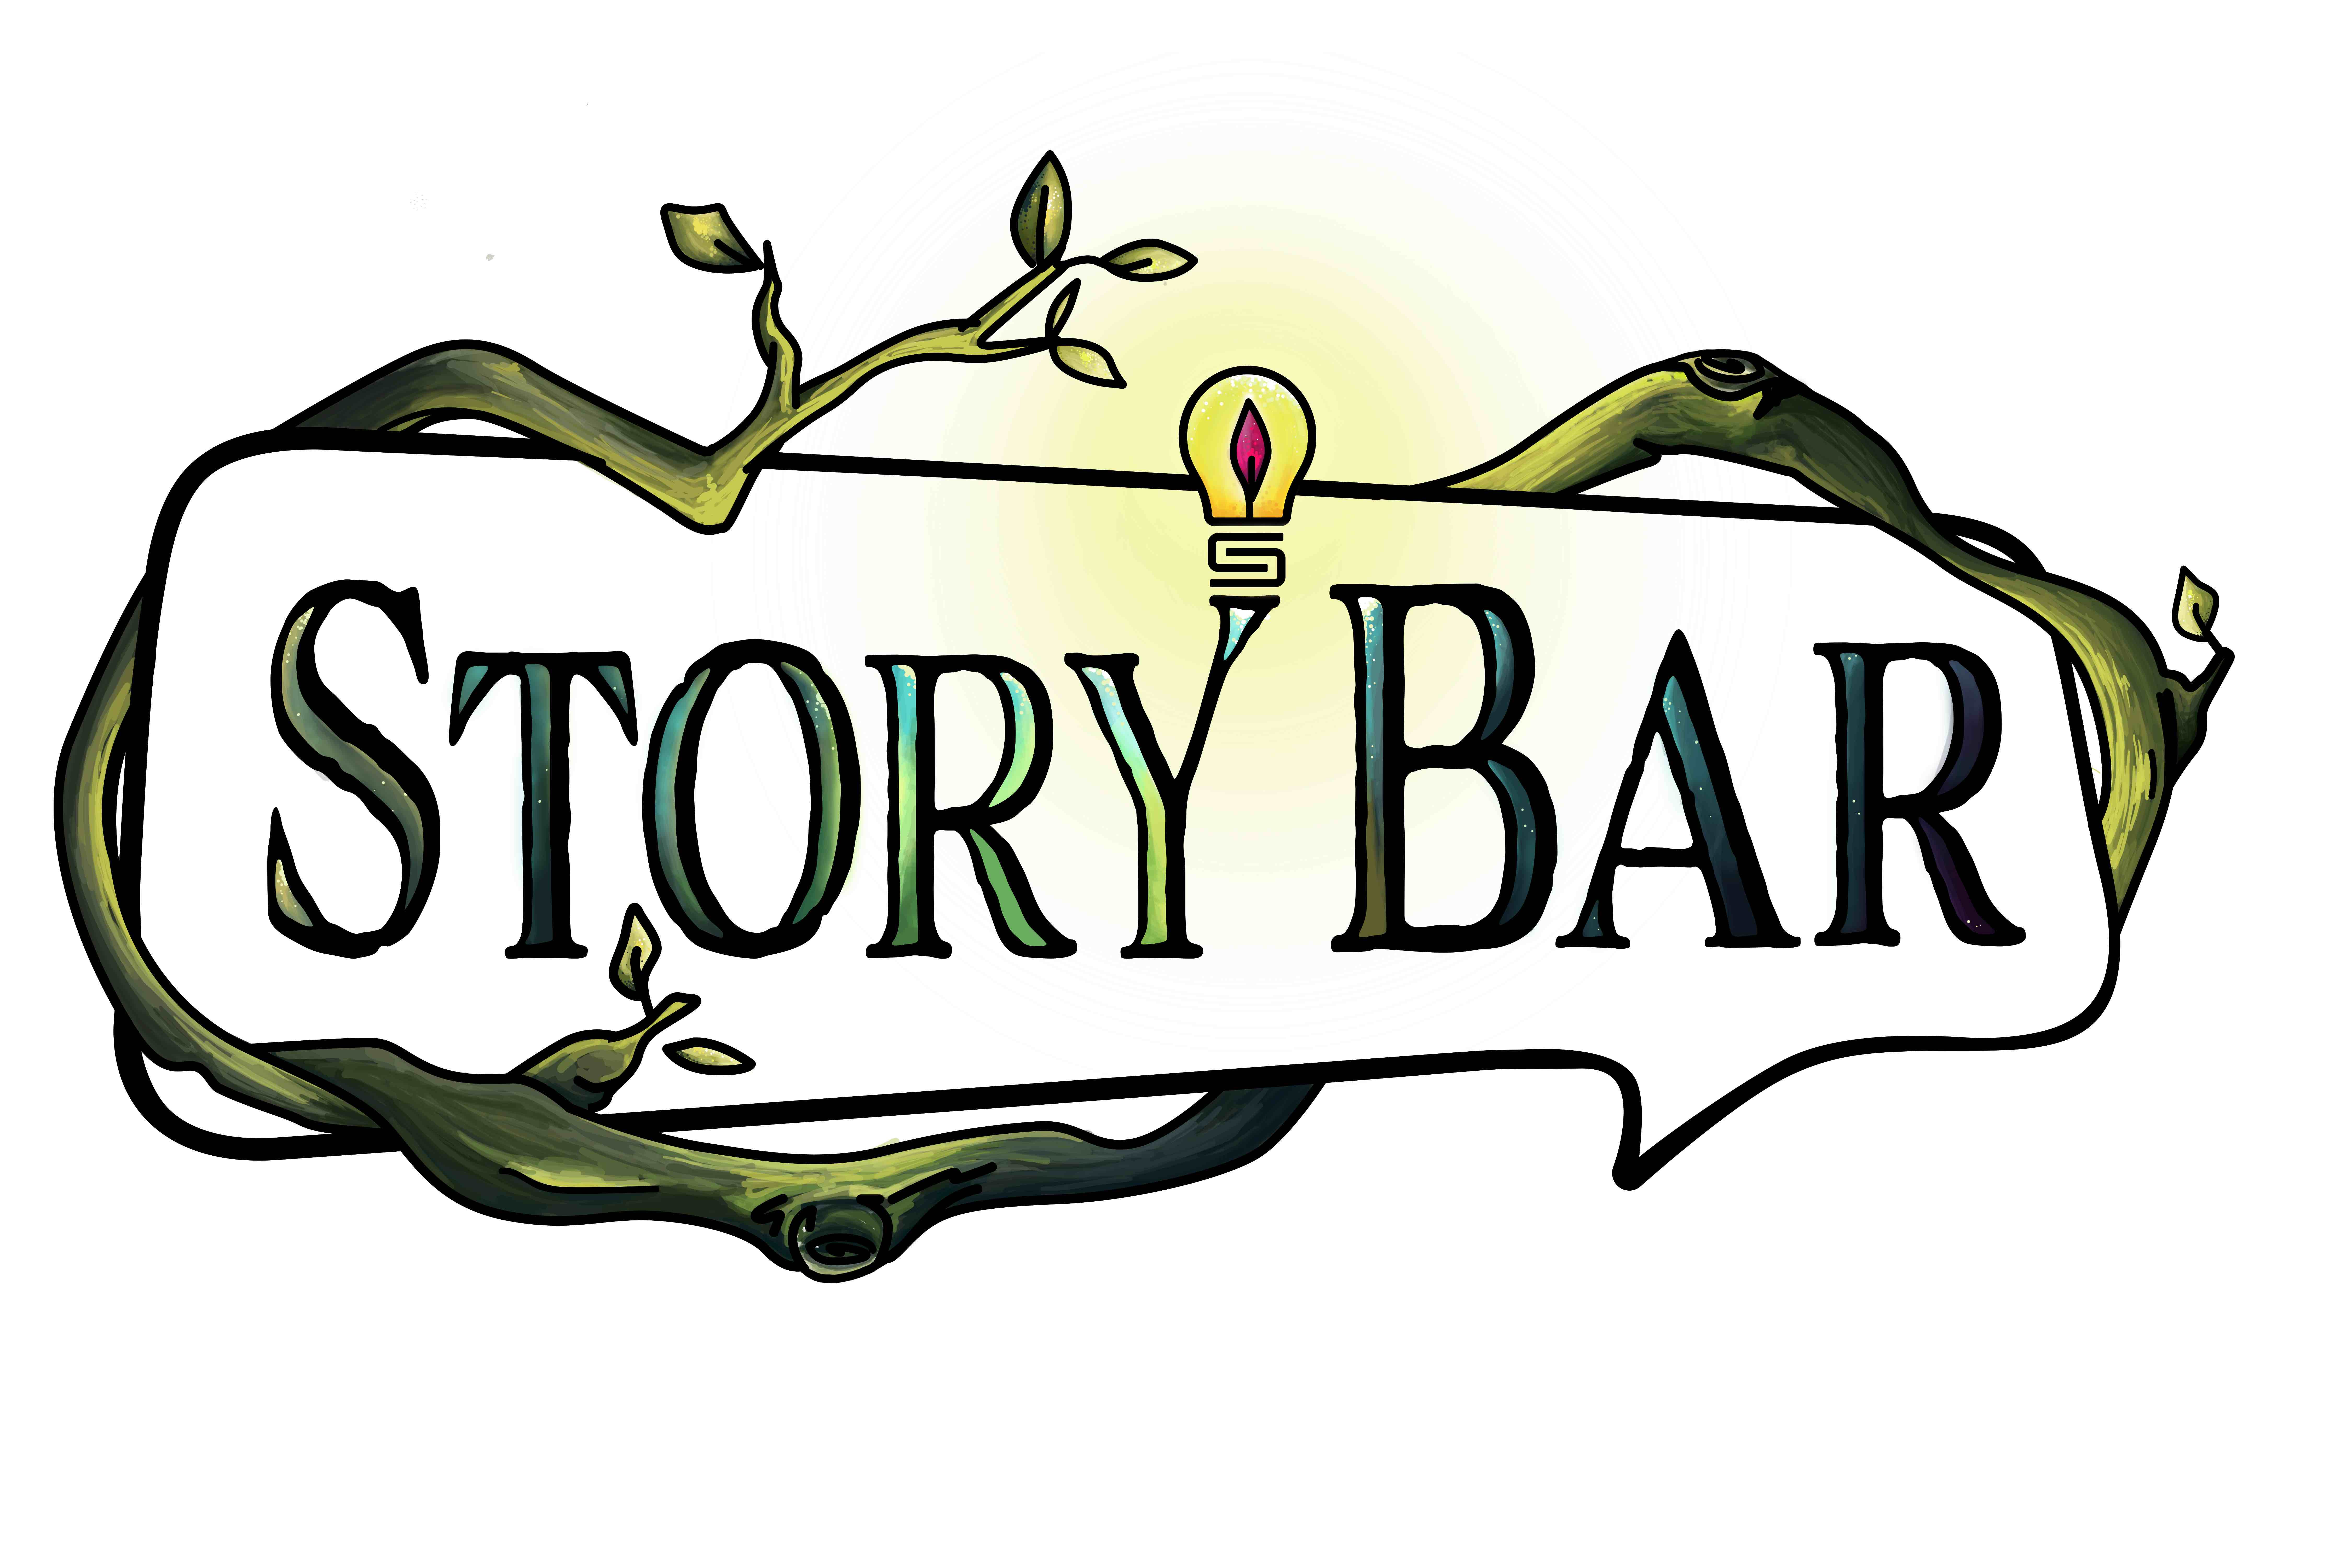 STORY BAR LOGO small